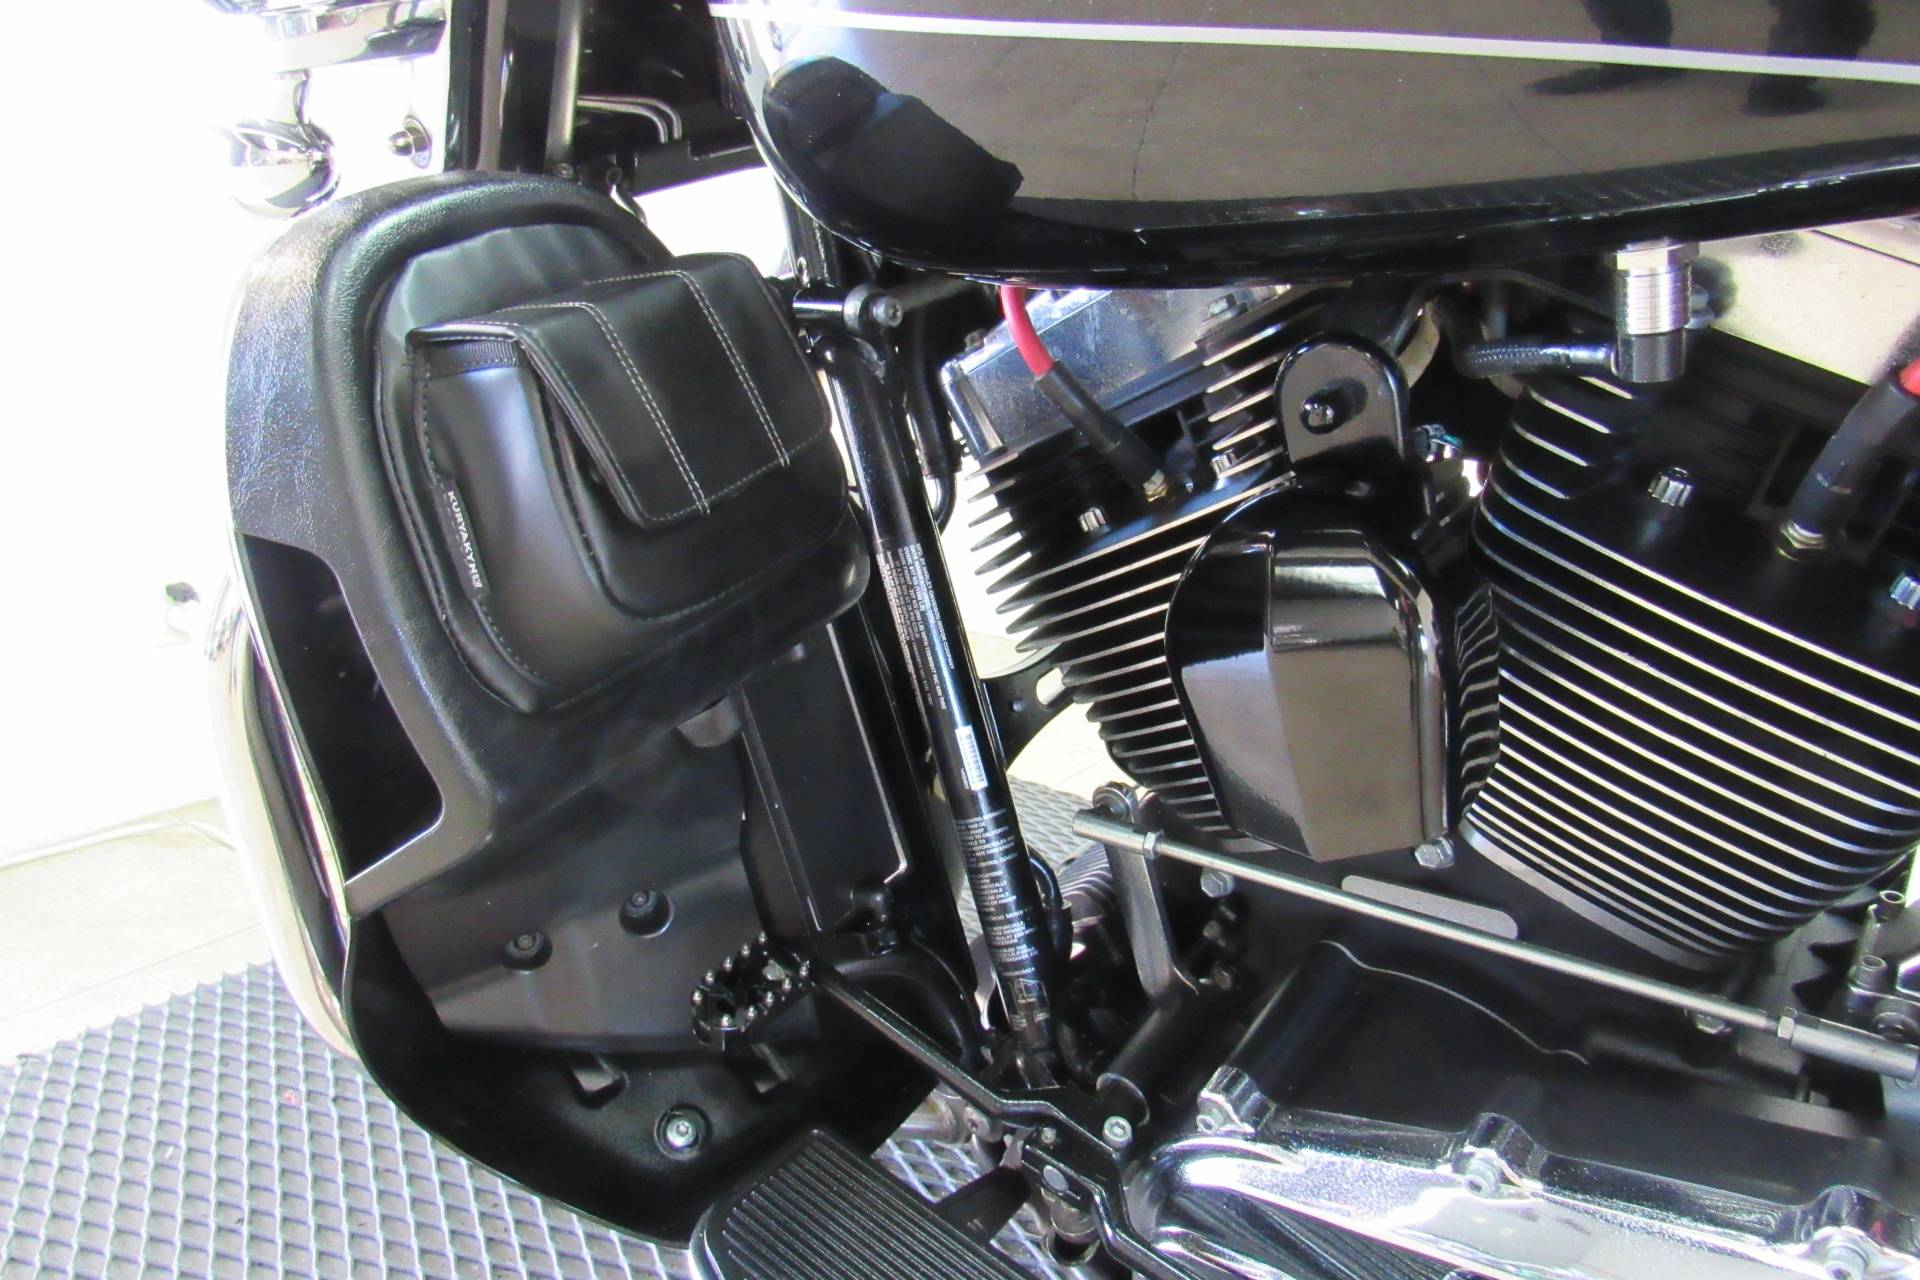 2014 Harley-Davidson Ultra Limited in Temecula, California - Photo 36